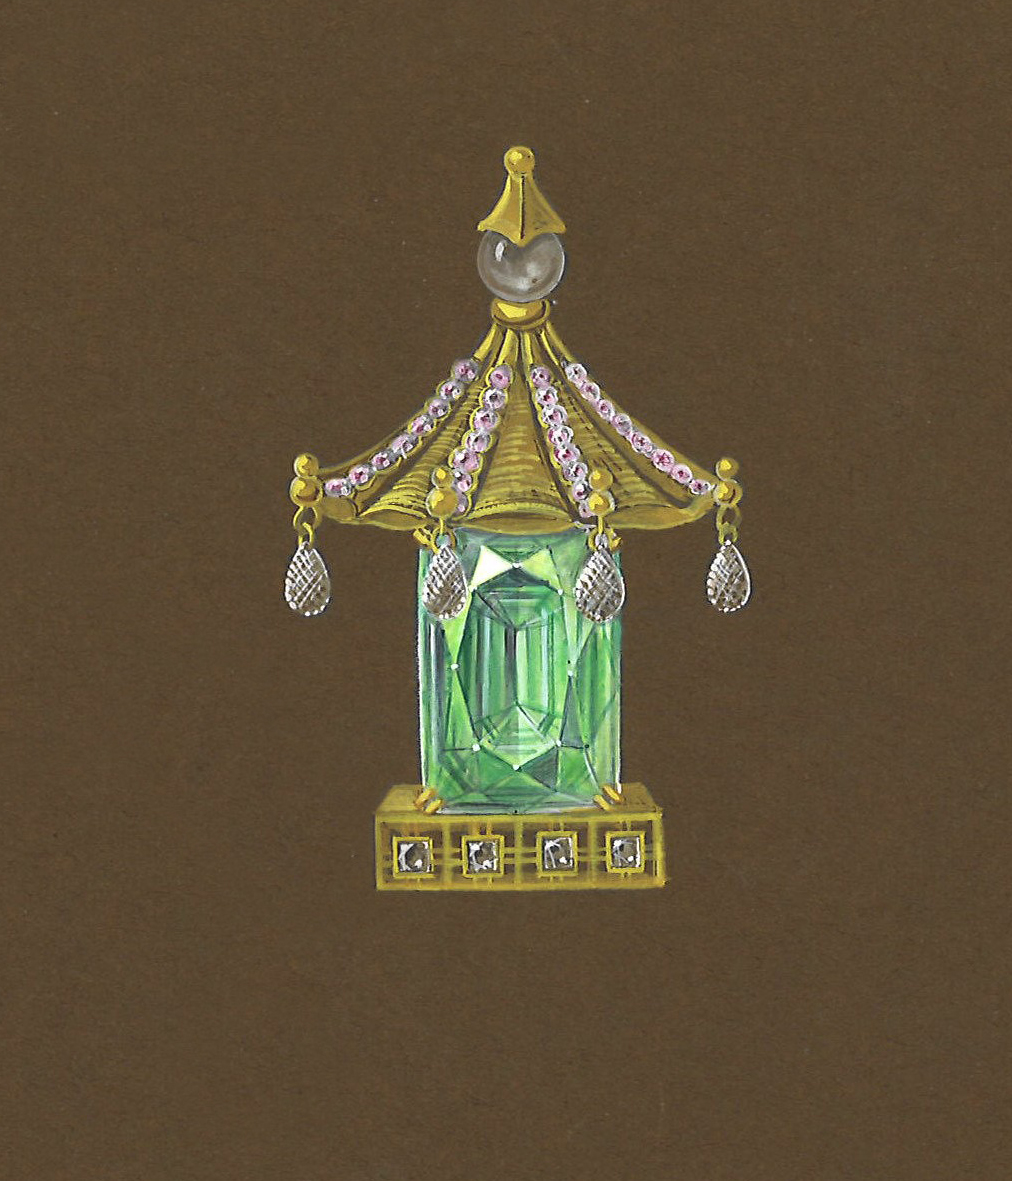 mish_jewelry_products_Chinoise-Brch-Peridot-Editorial-2